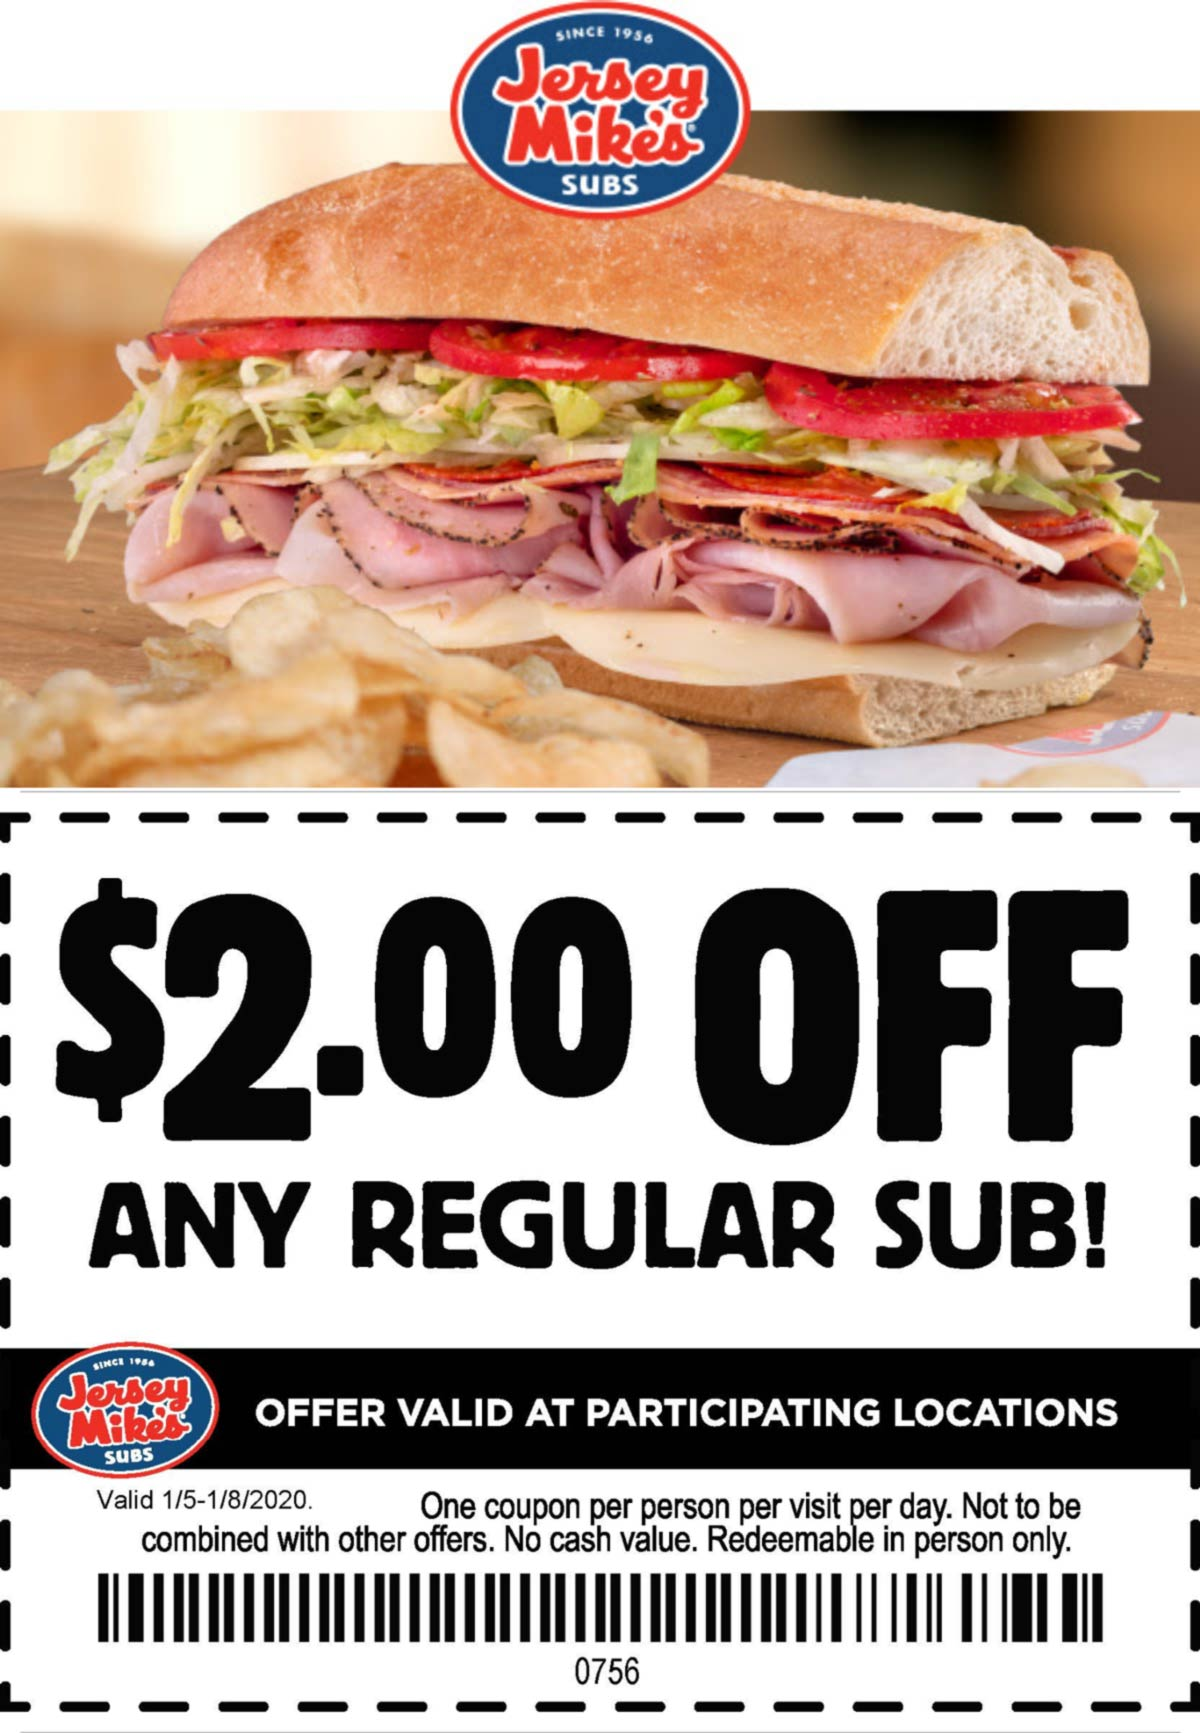 Jersey Mikes restaurants Coupon  $2 off a sub sandwich at Jersey Mikes #jerseymikes